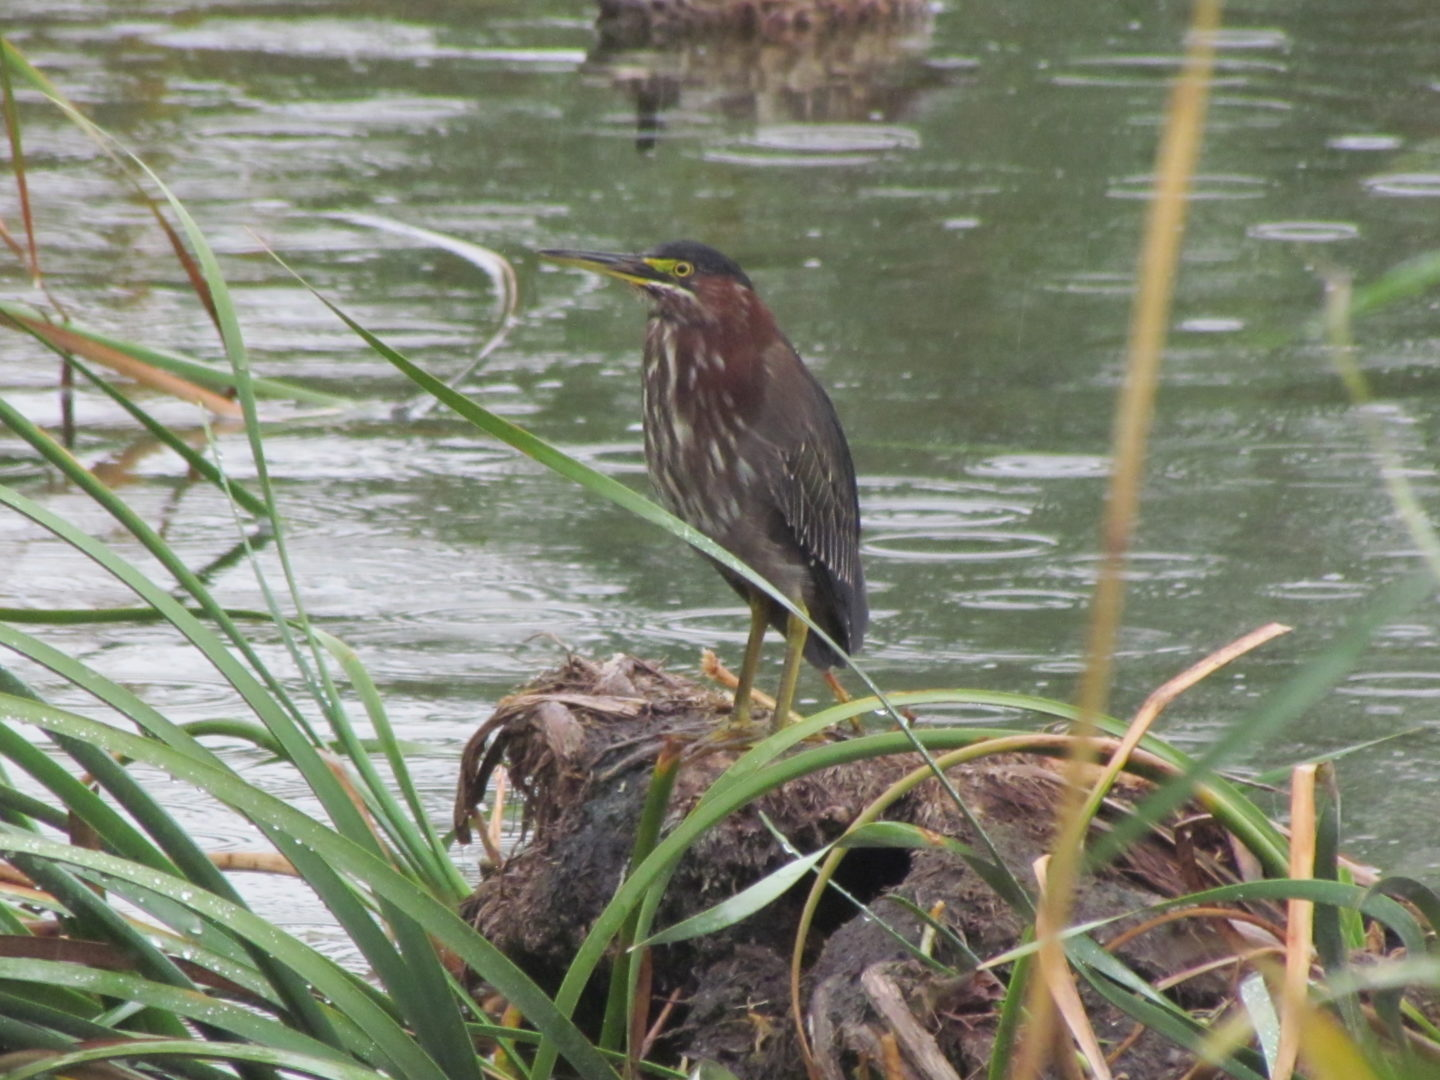 Green Heron standing on vegetation